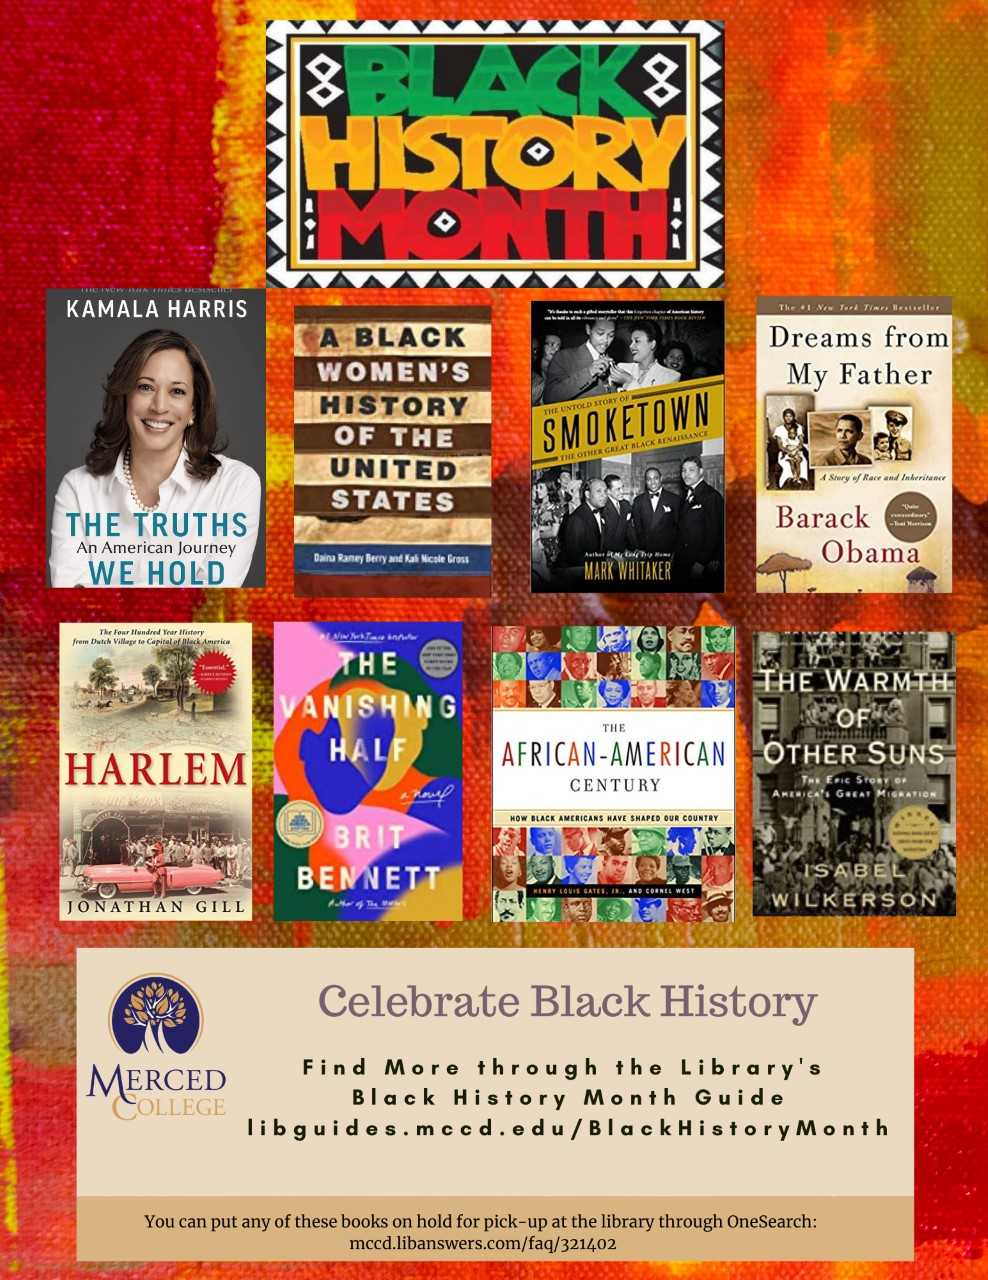 Ad sharing about the library's Black History Month guide